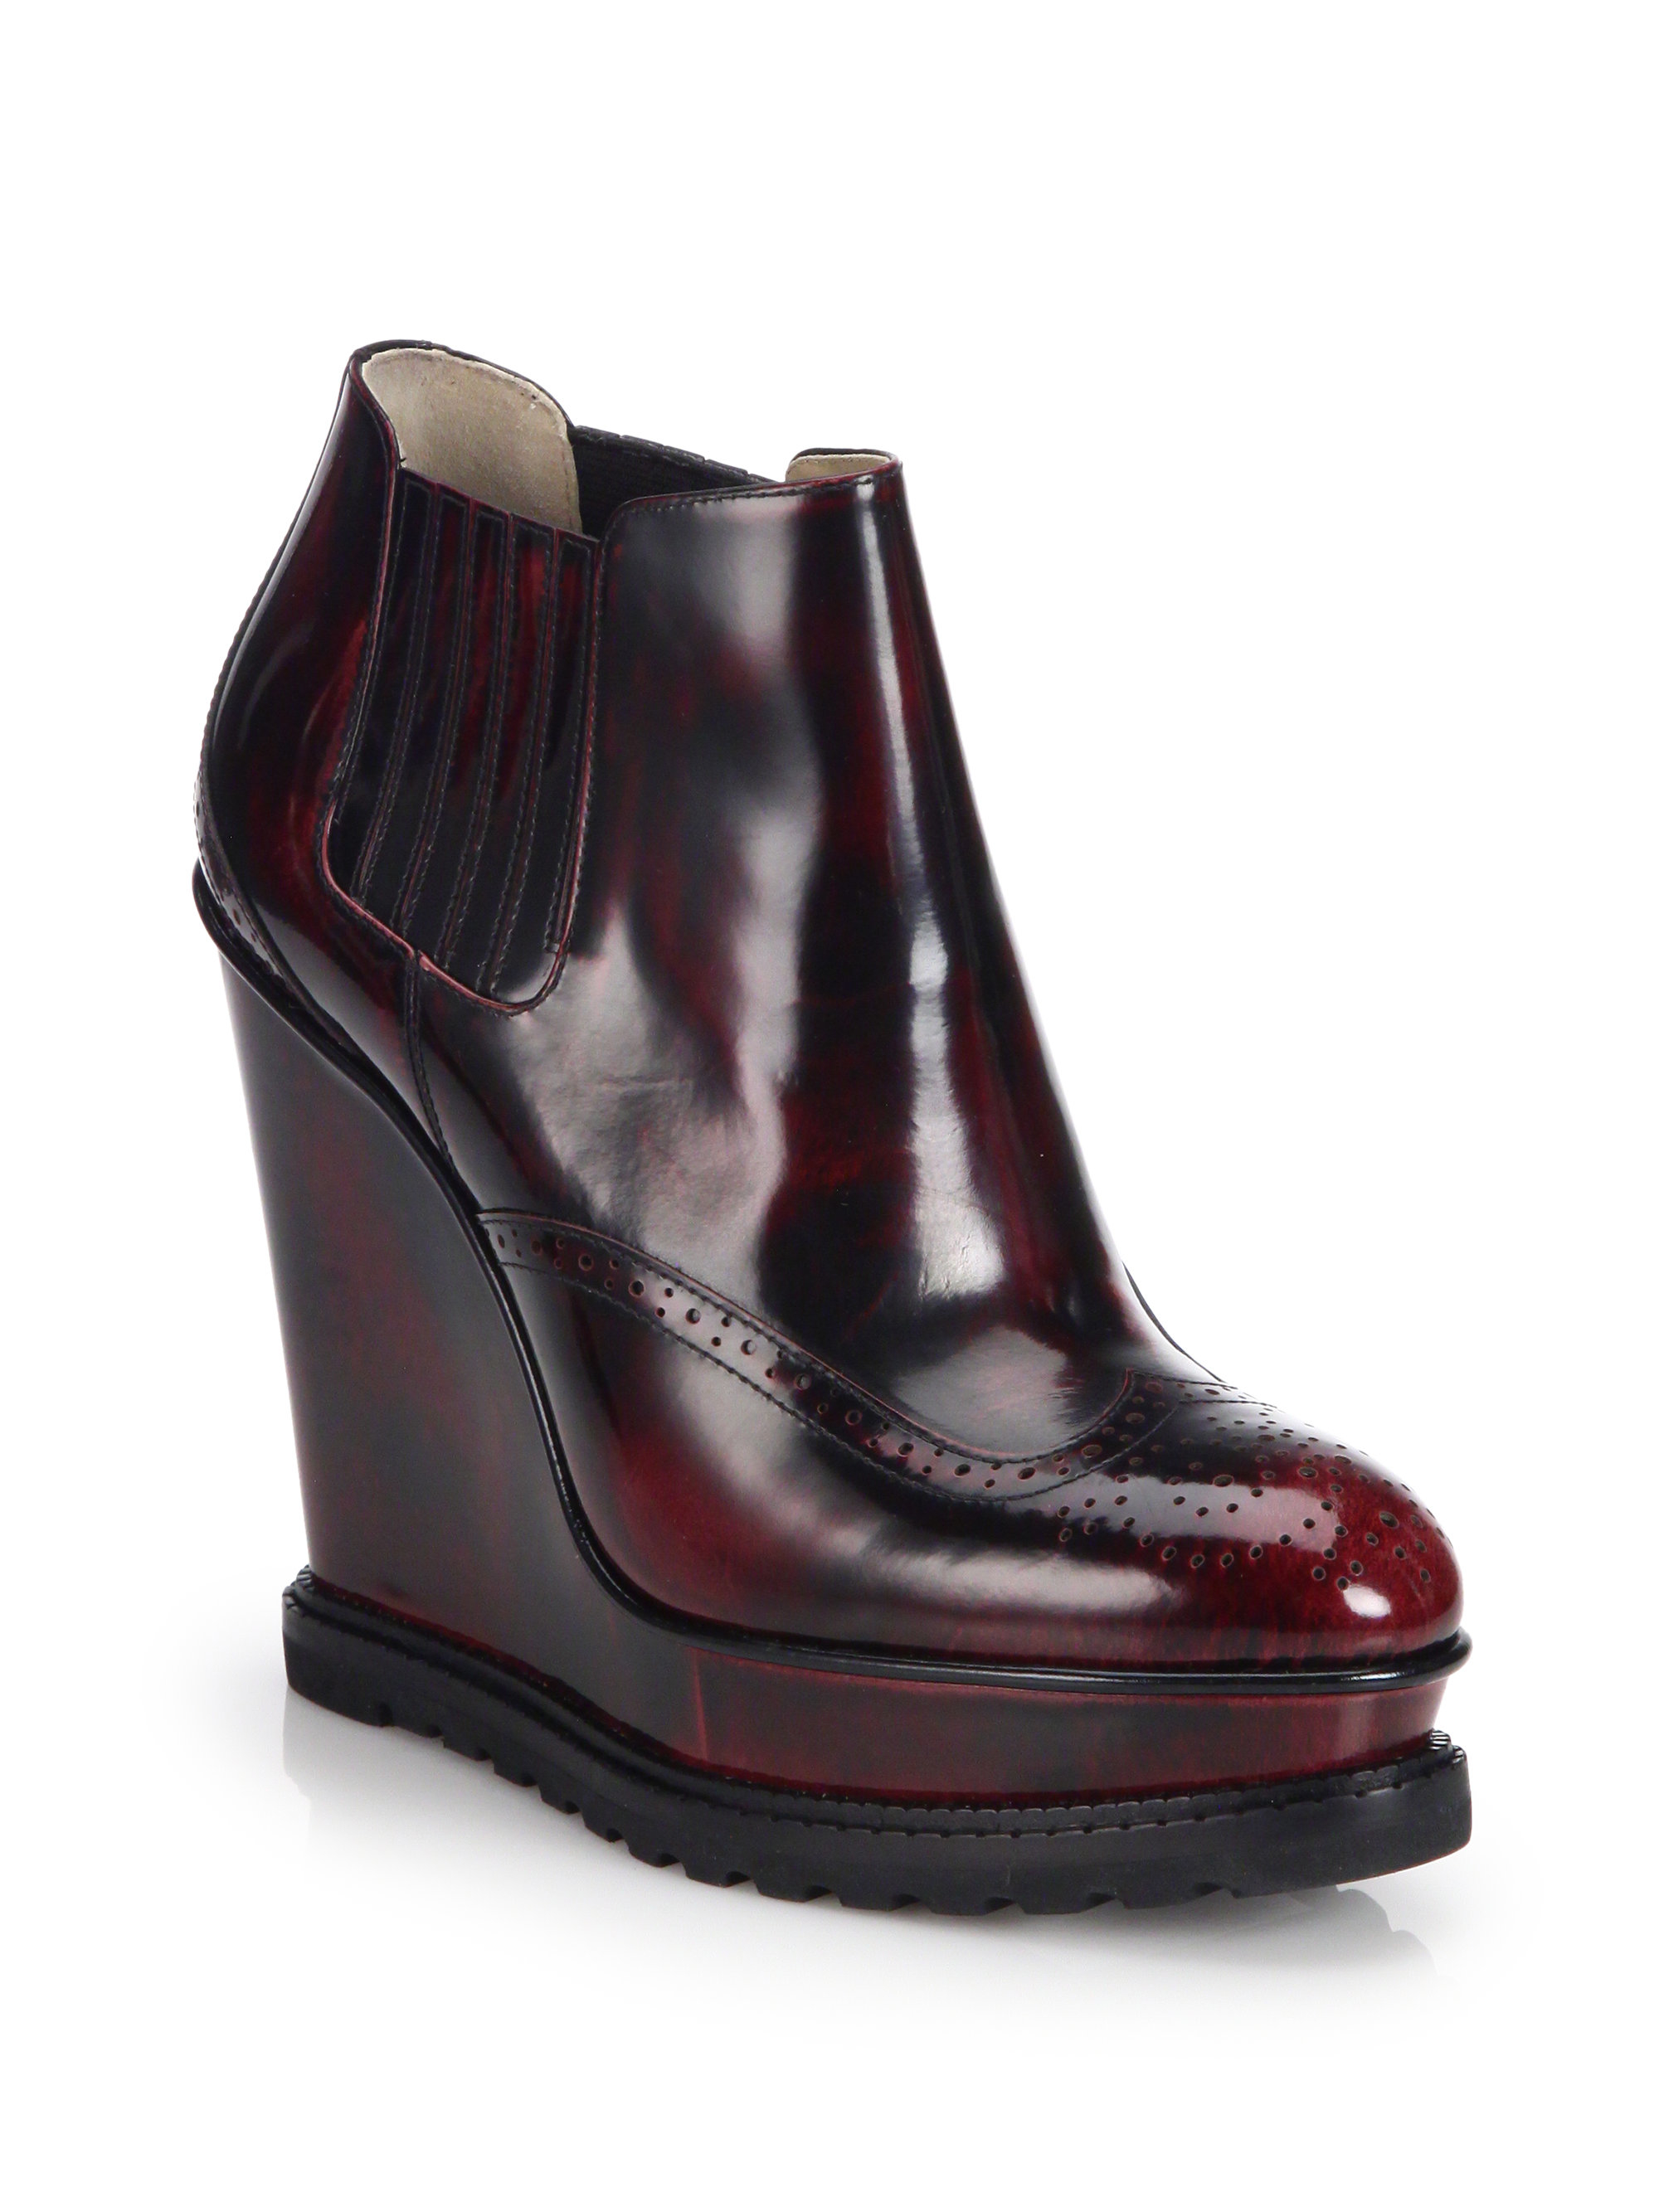 michael kors collette patent leather wedge ankle boots in. Black Bedroom Furniture Sets. Home Design Ideas